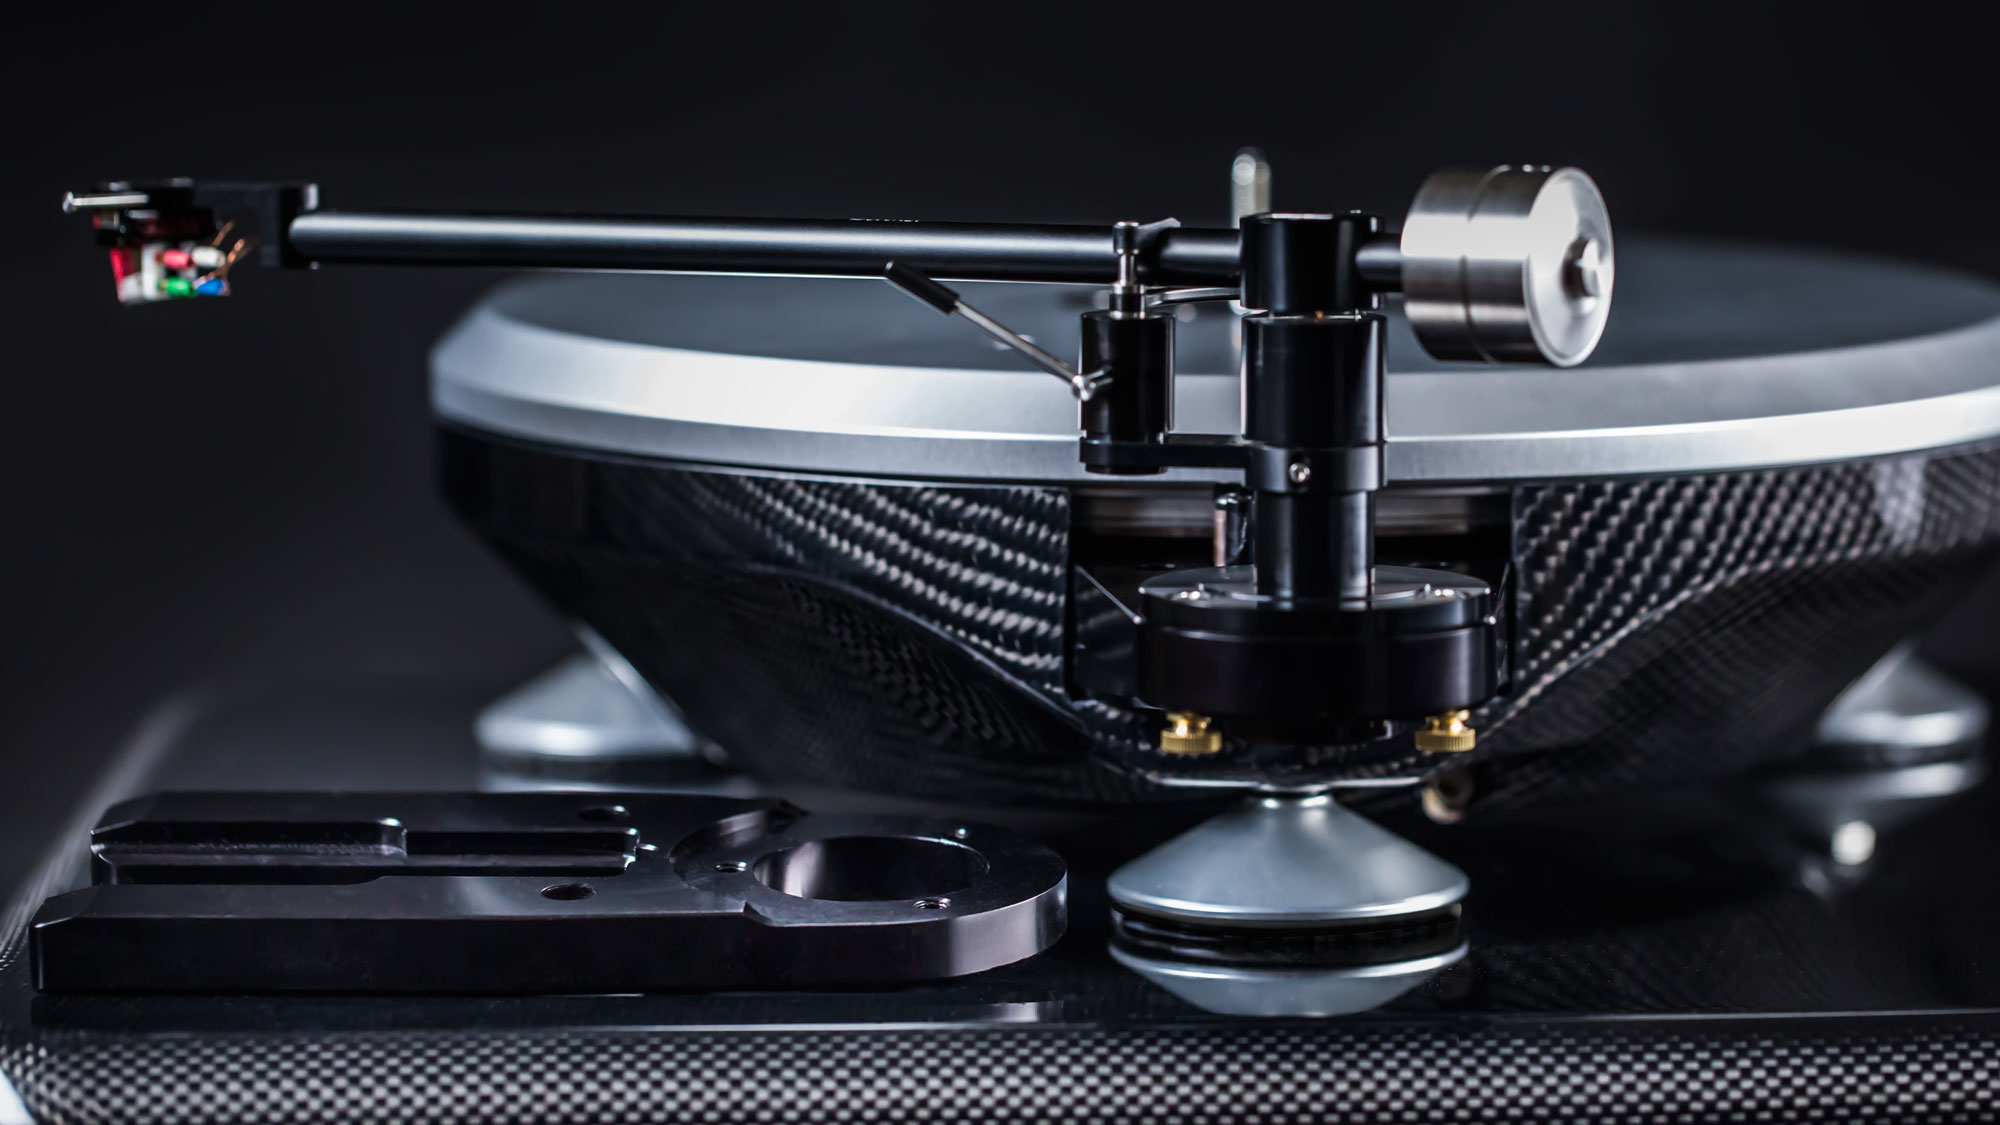 carbon fiber Parabolica turntable with tonearm visible